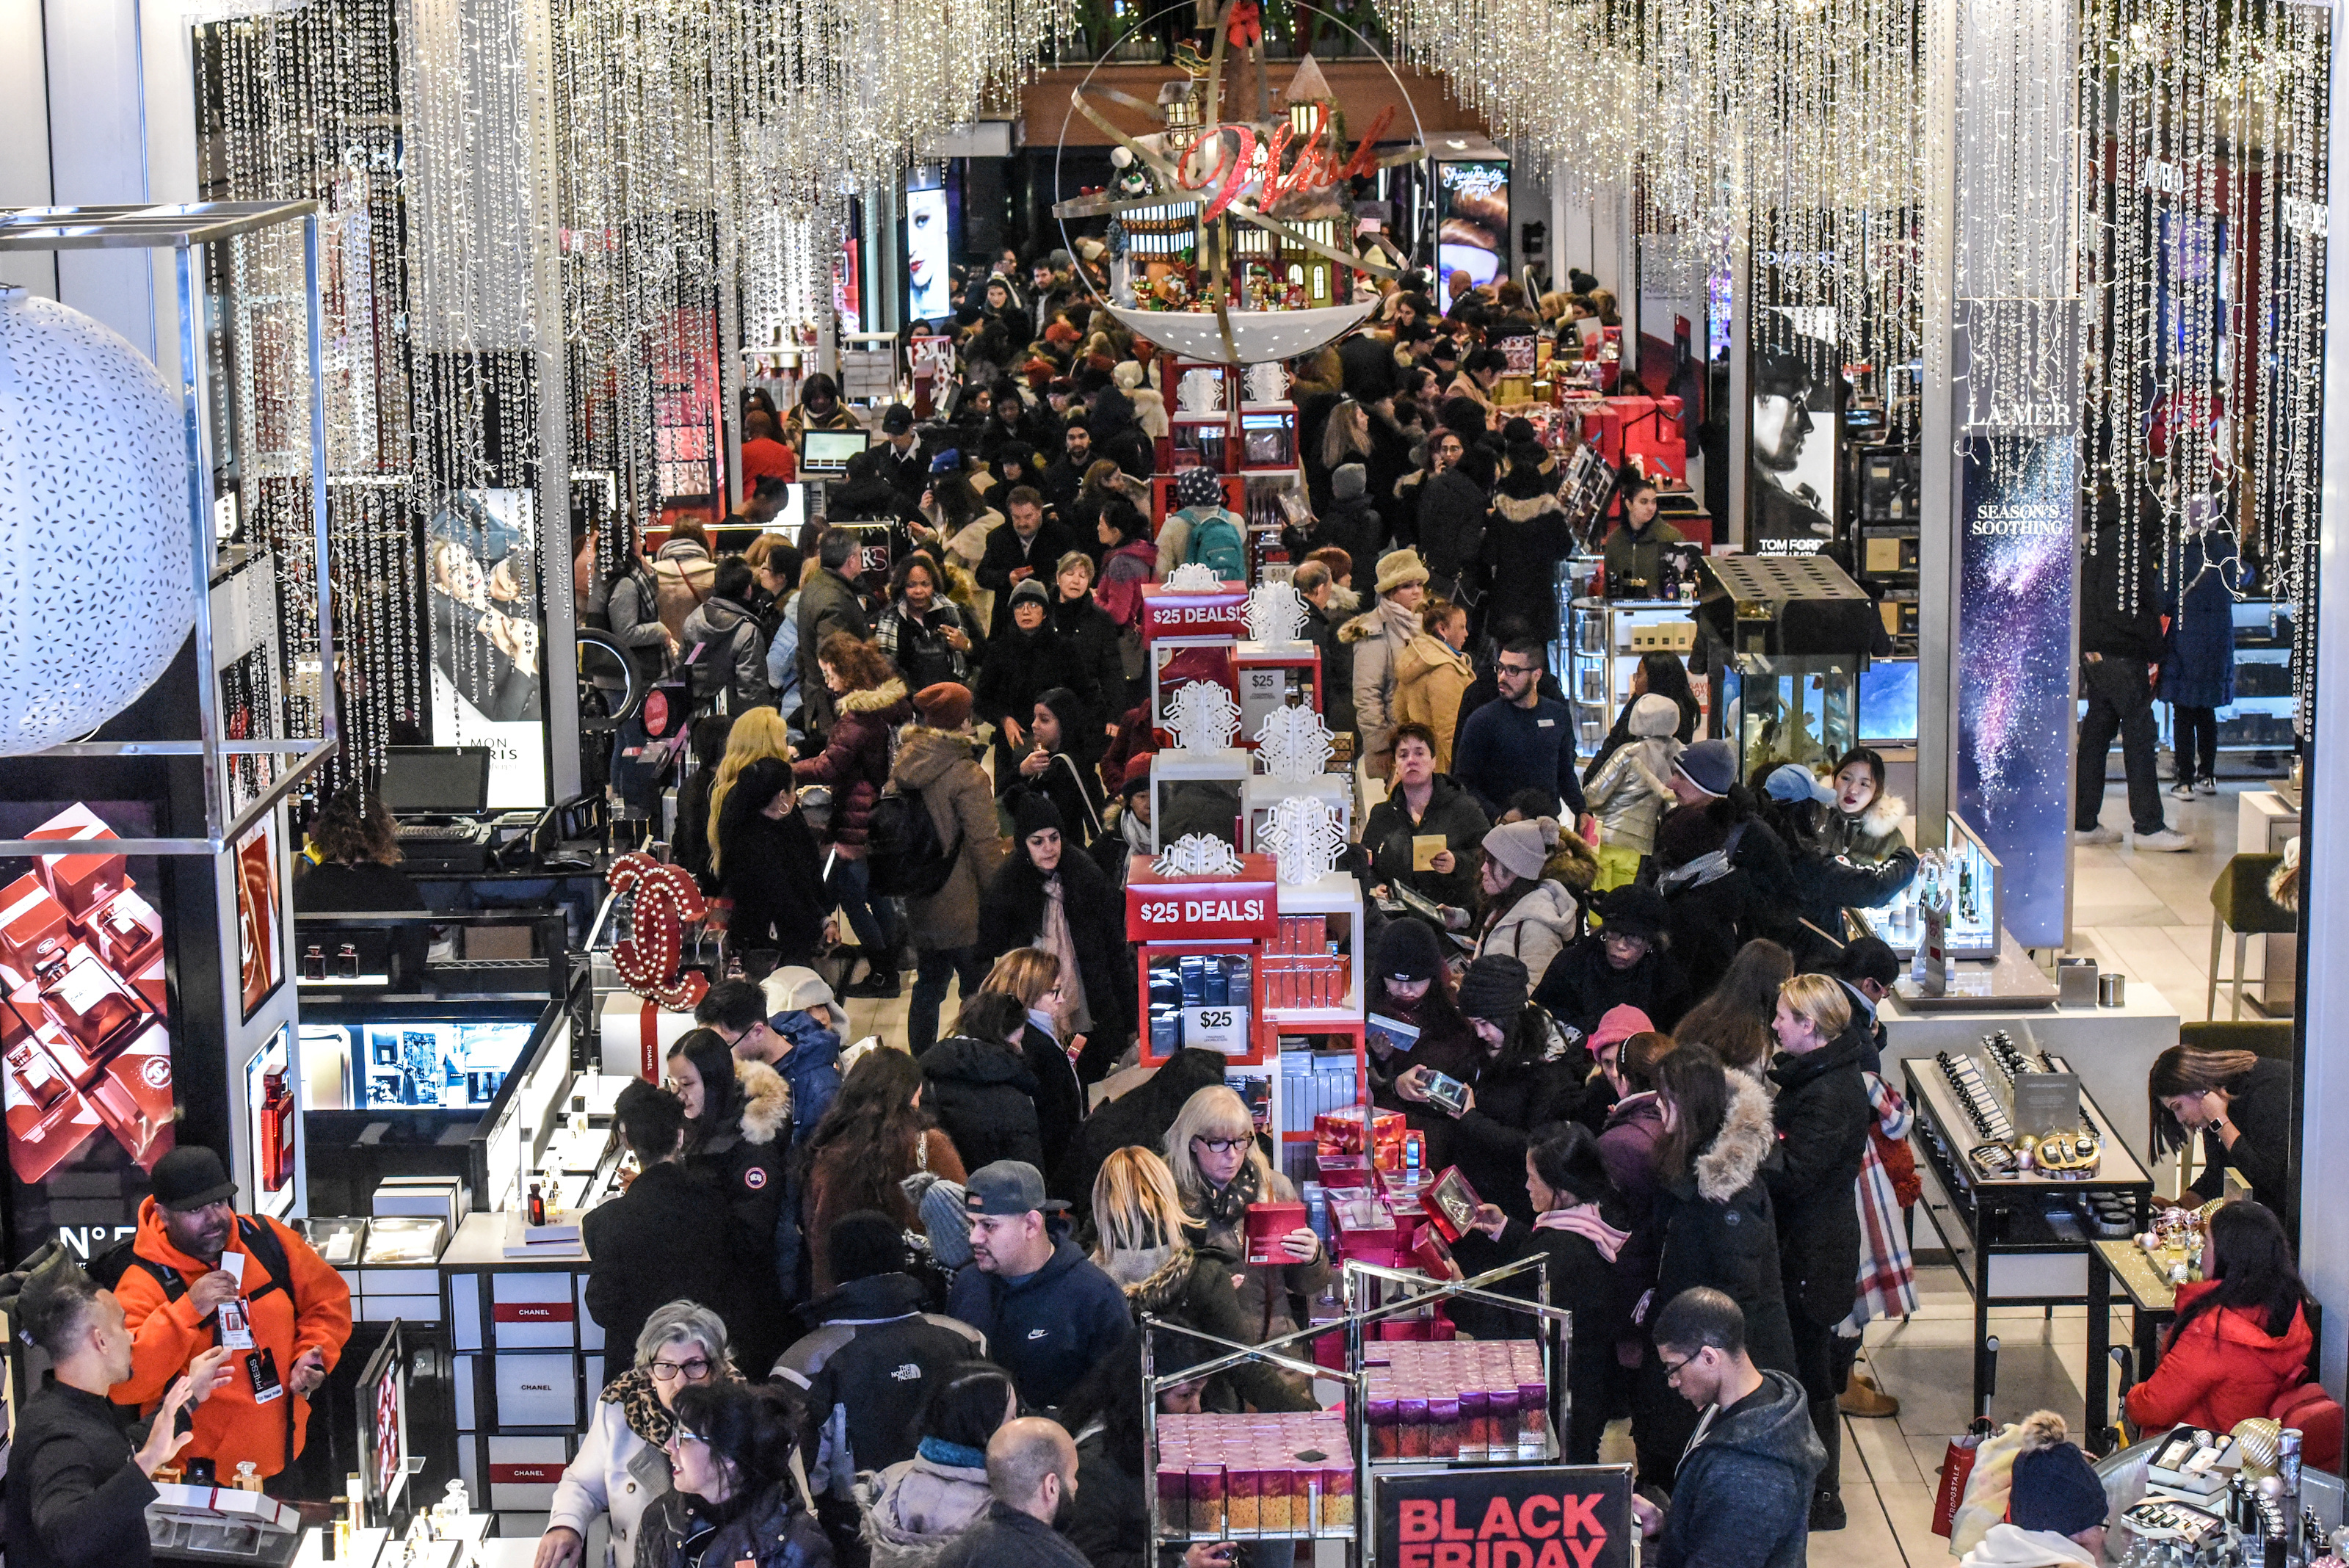 A large crowd of people shop during a Black Friday sales event at Macy's flagship store on 34th St. in New York City, U.S., November 22, 2018. REUTERS/Stephanie Keith